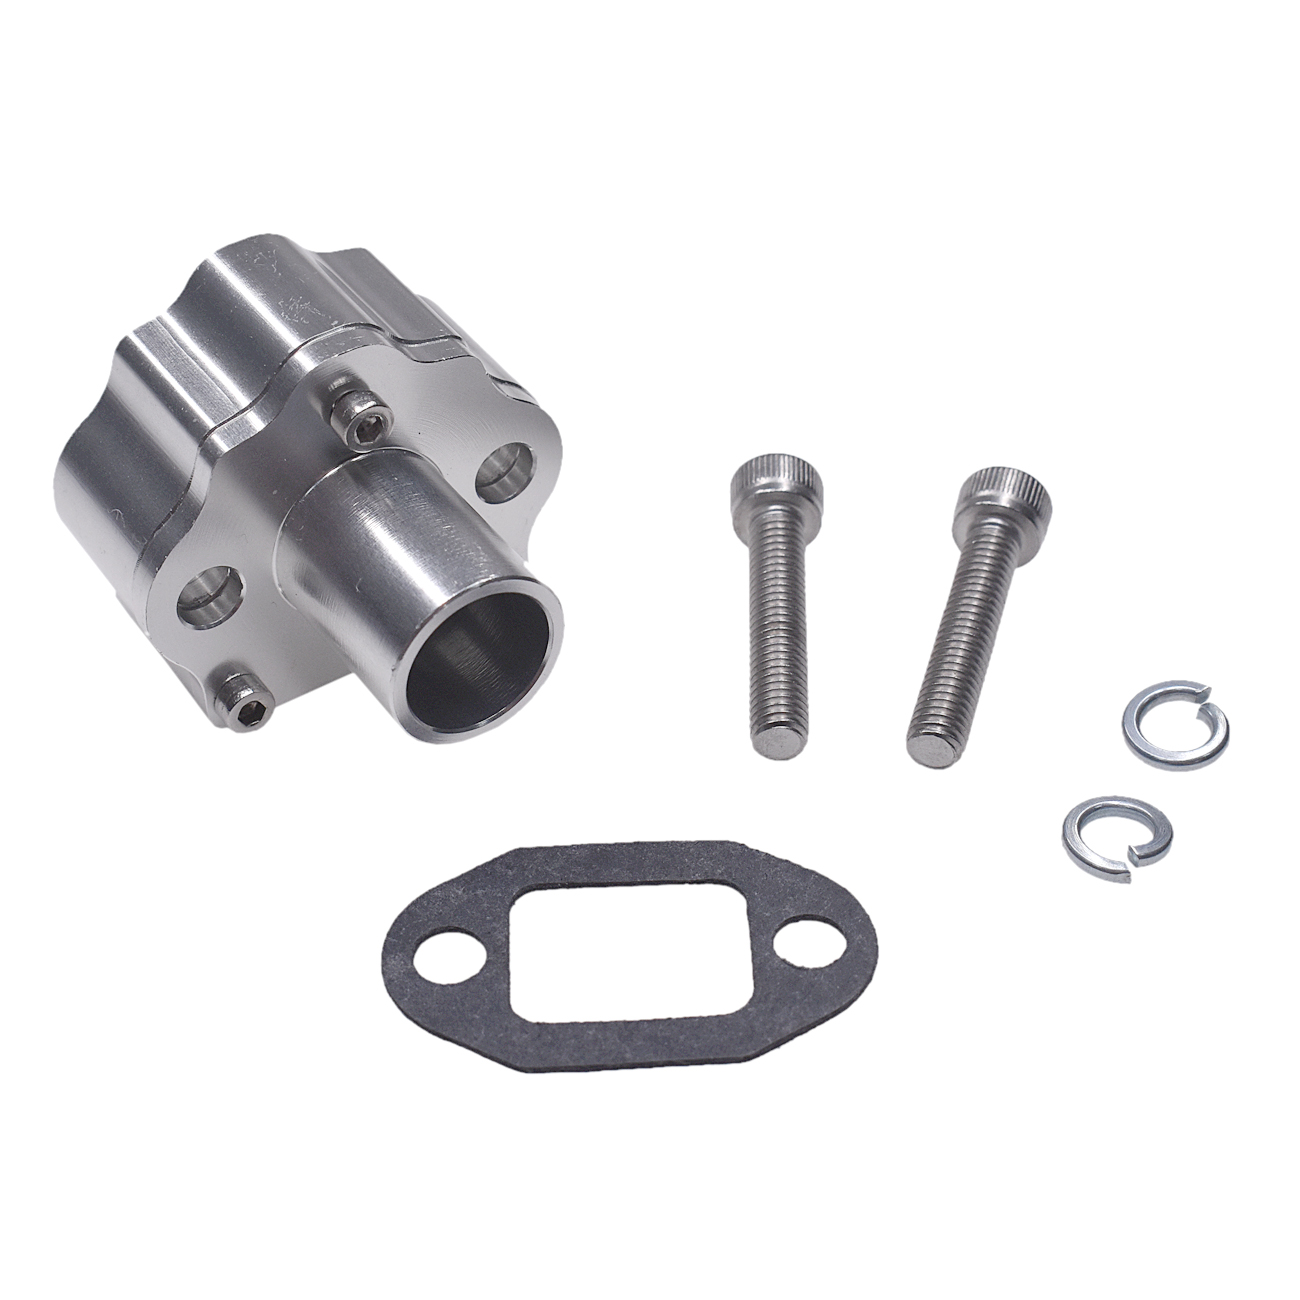 Silver 32mm Reed Valve Air Manifold Intake For 60cc 66cc 80cc Motorized BikeSilver 32mm Reed Valve Air Manifold Intake For 60cc 66cc 80cc Motorized Bike